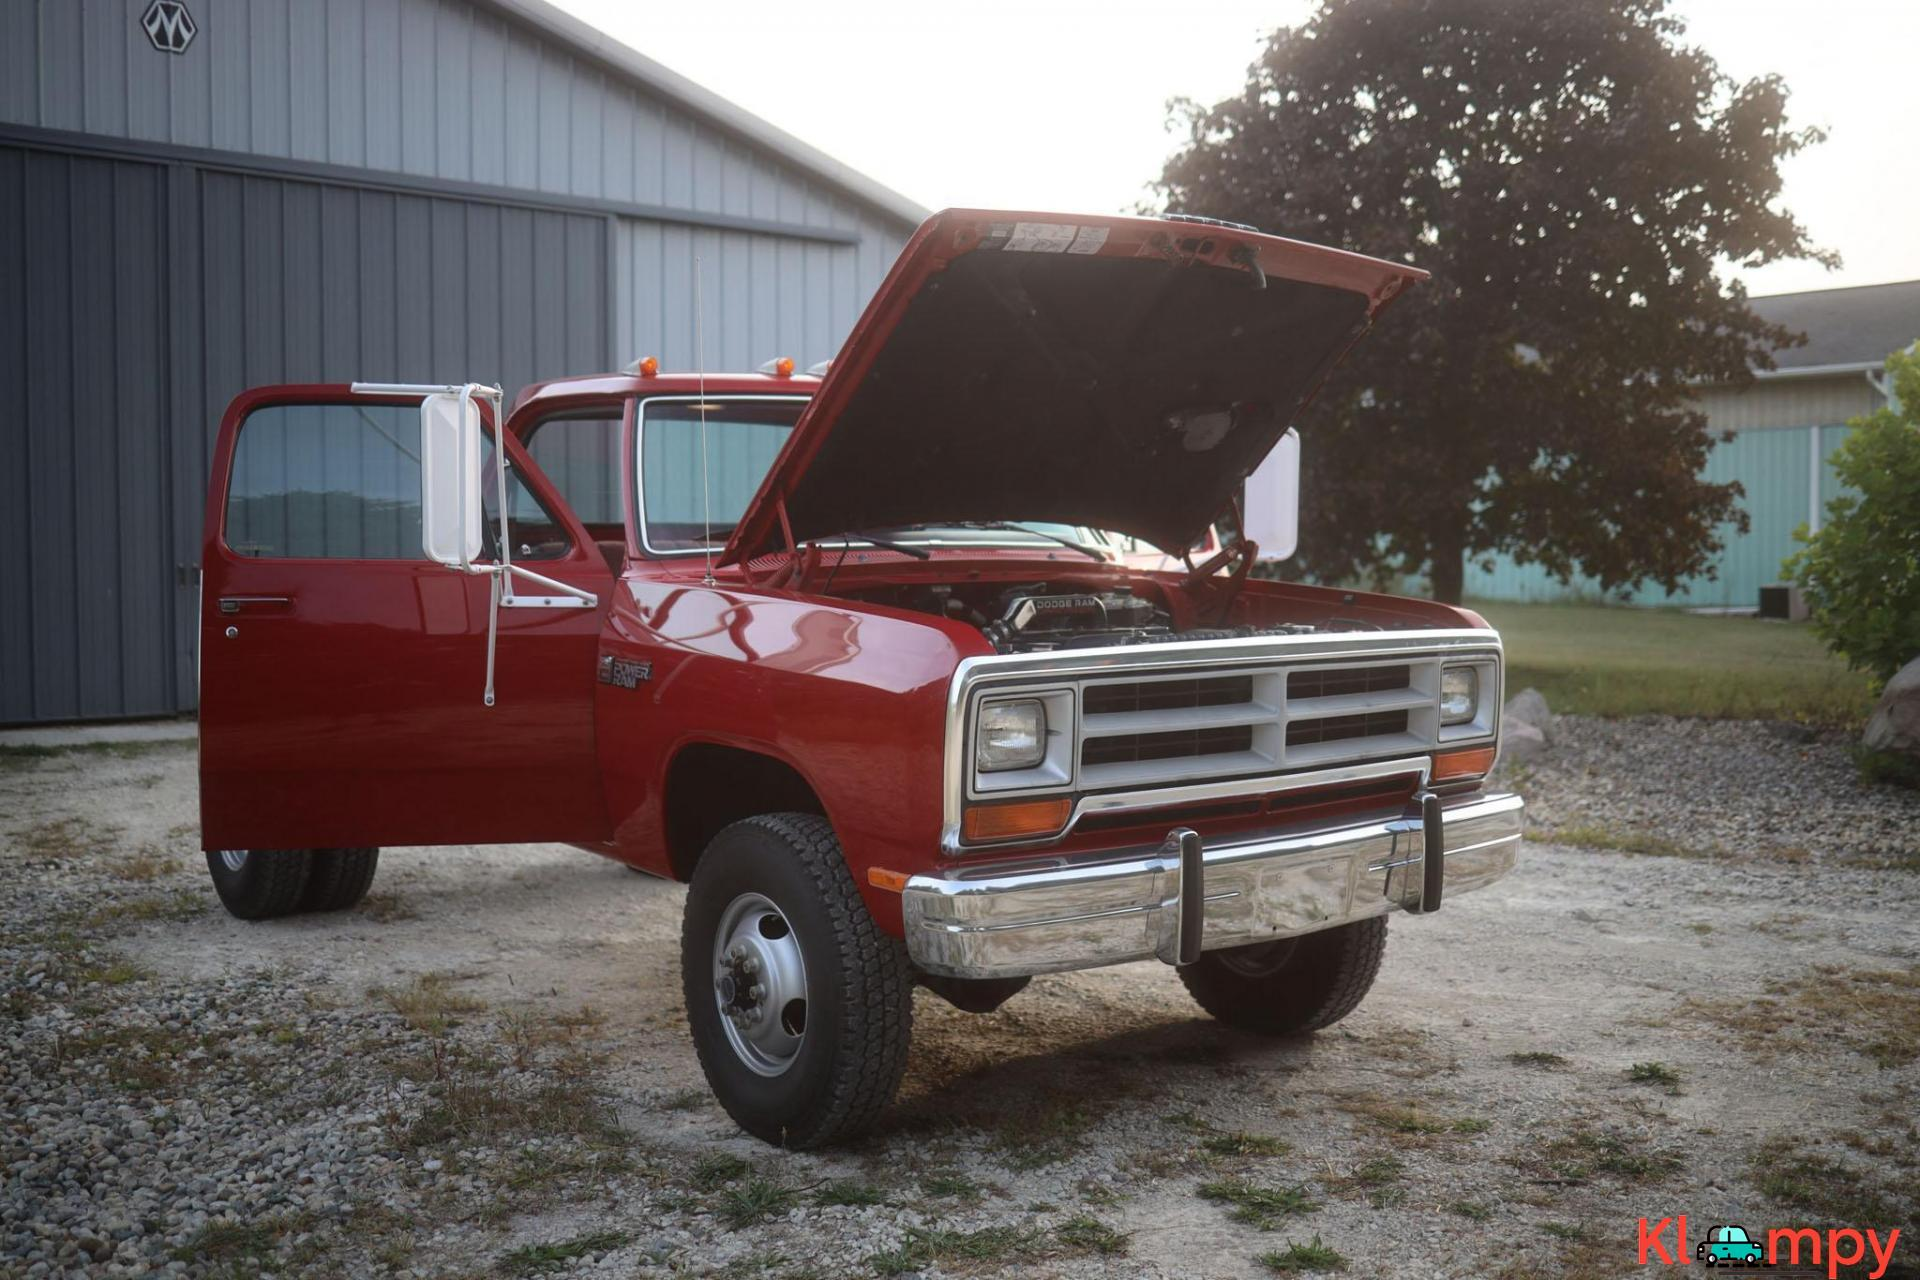 1989 Dodge Power Ram W350 4×4 Truck - 8/20